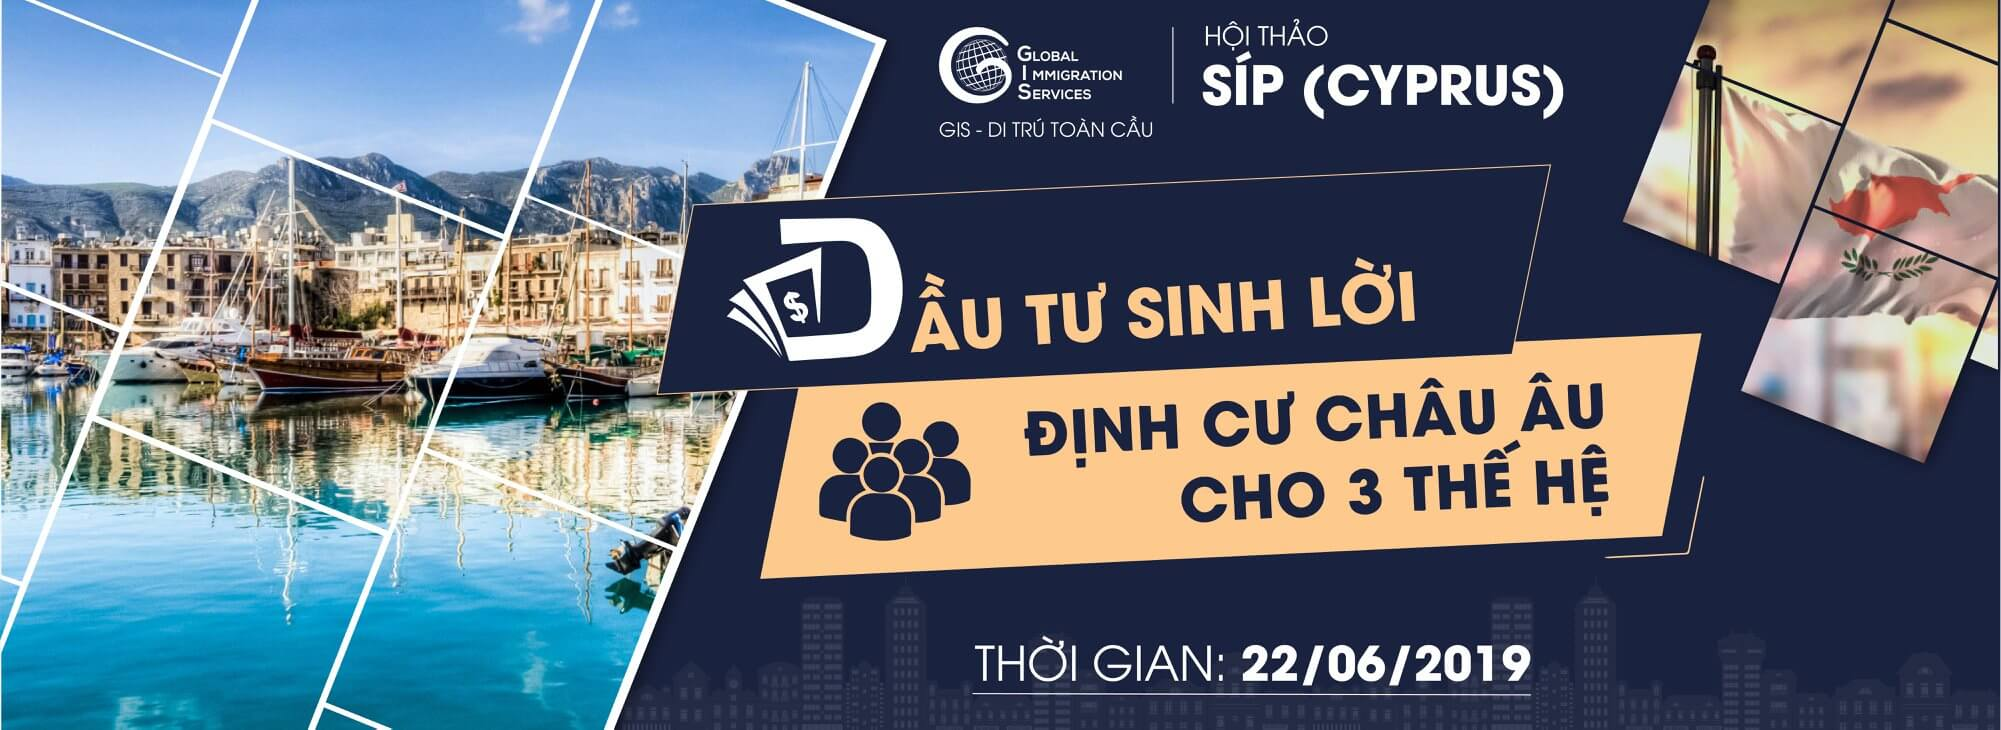 Event Hội thảo Sip 22.6.2019